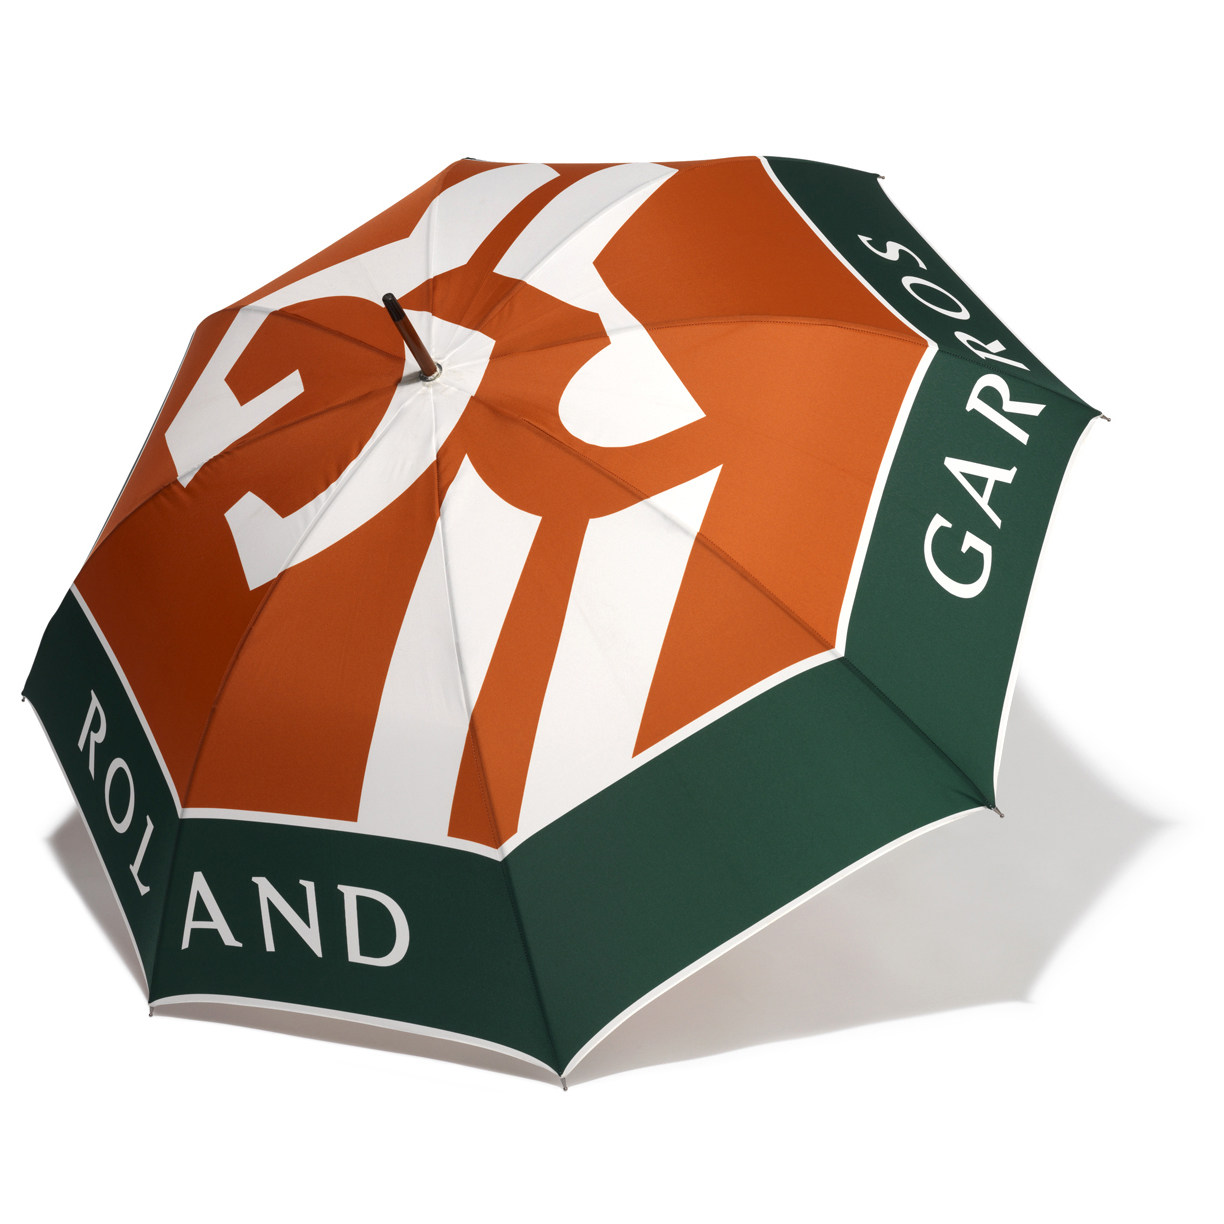 Roland-Garros Large Logo Umbrella - 93cm